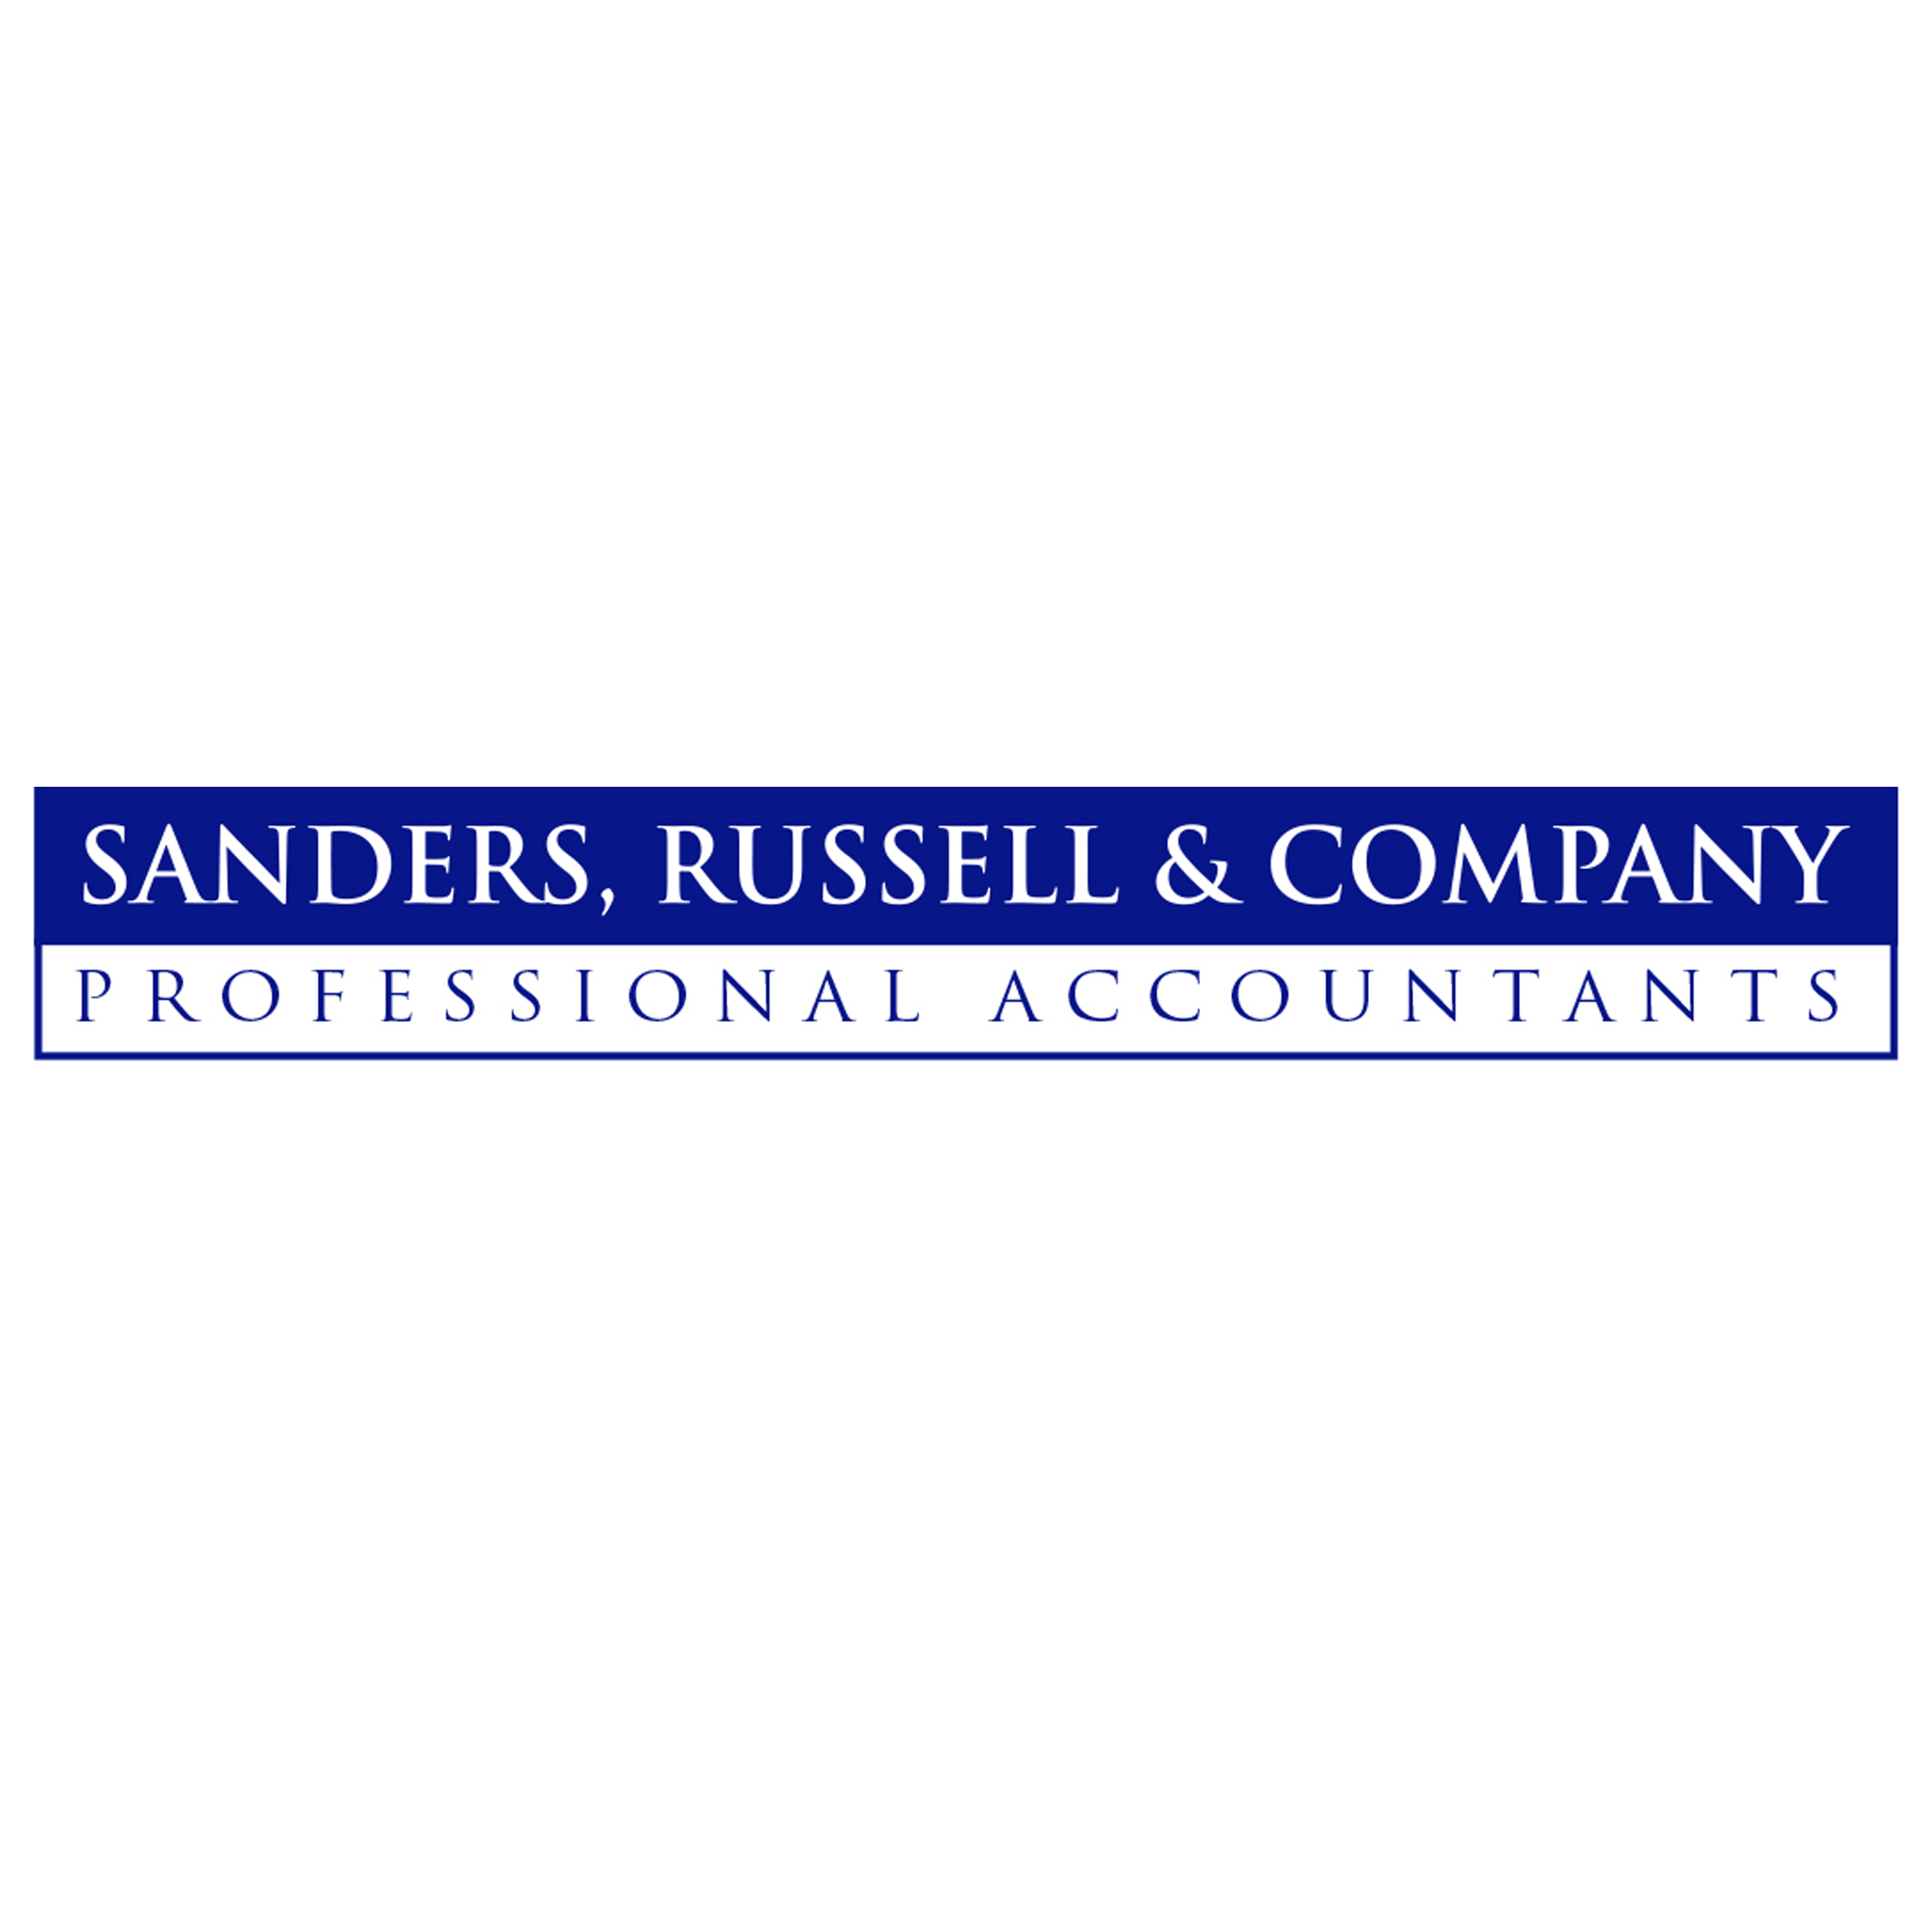 Sanders Russell and Co.